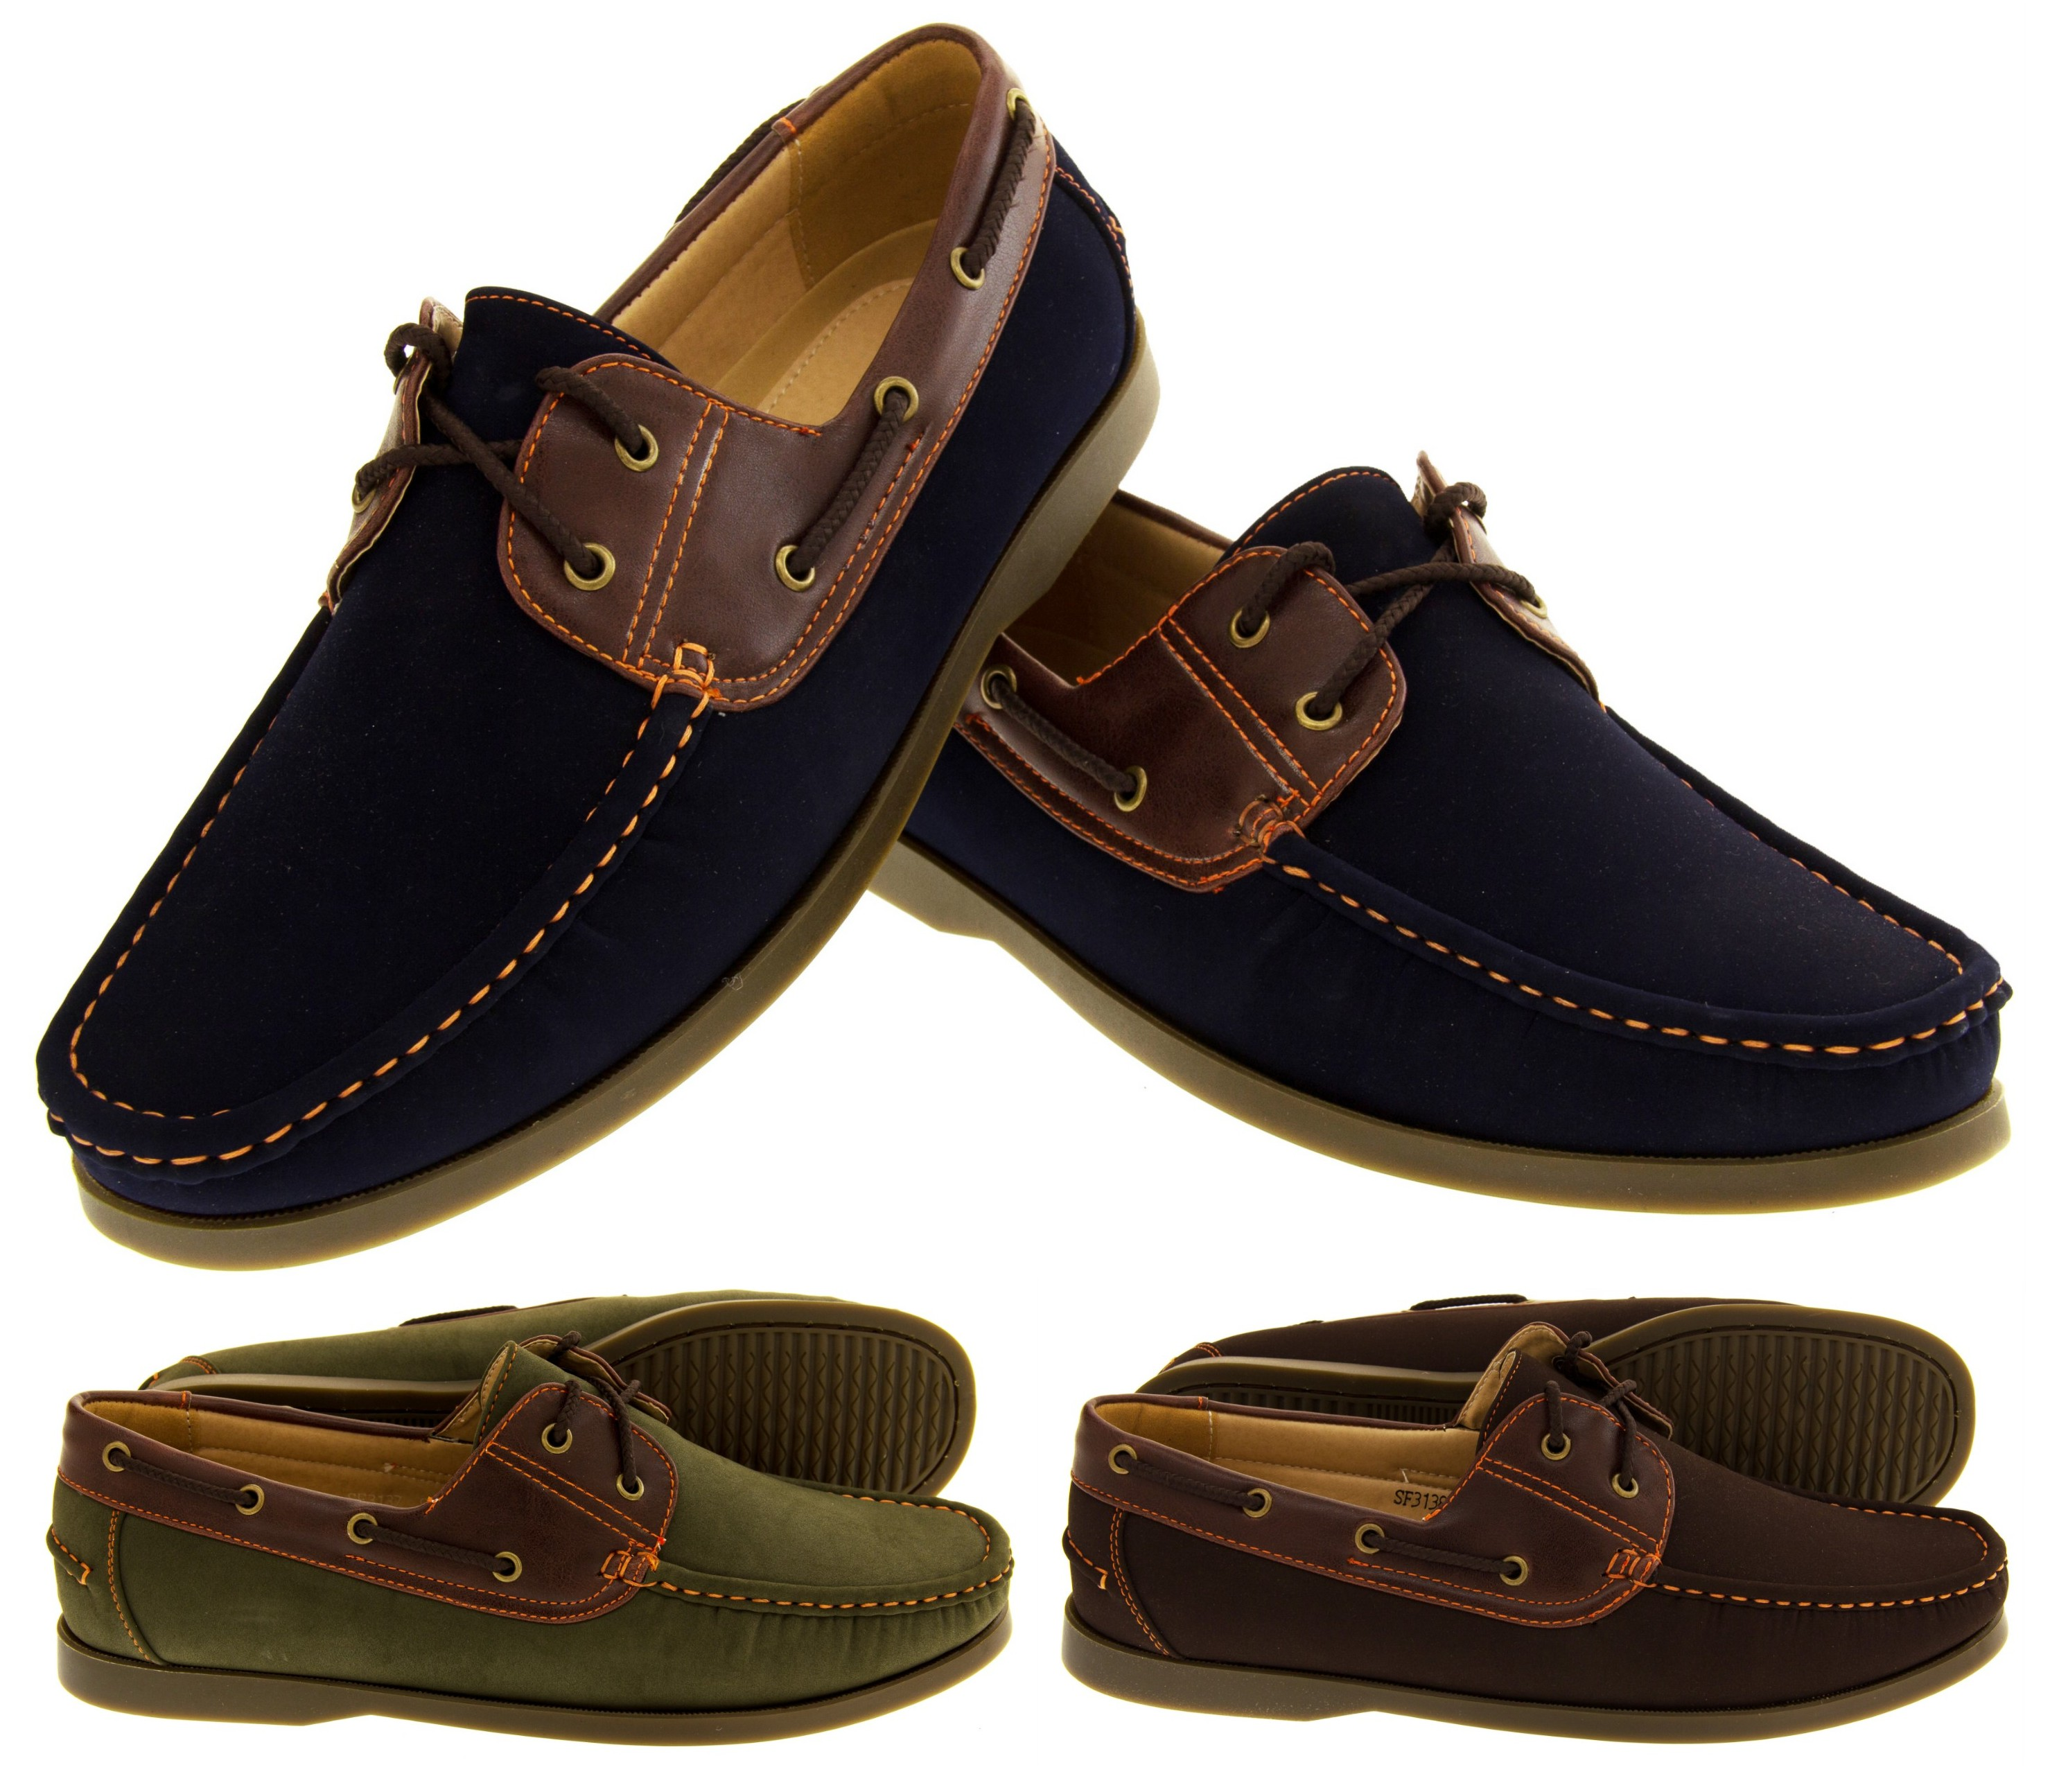 24003d9f1fe Mens SHORESIDE Casual Deck Shoes Lace Up Summer Loafers Size 7 8 9 10 11